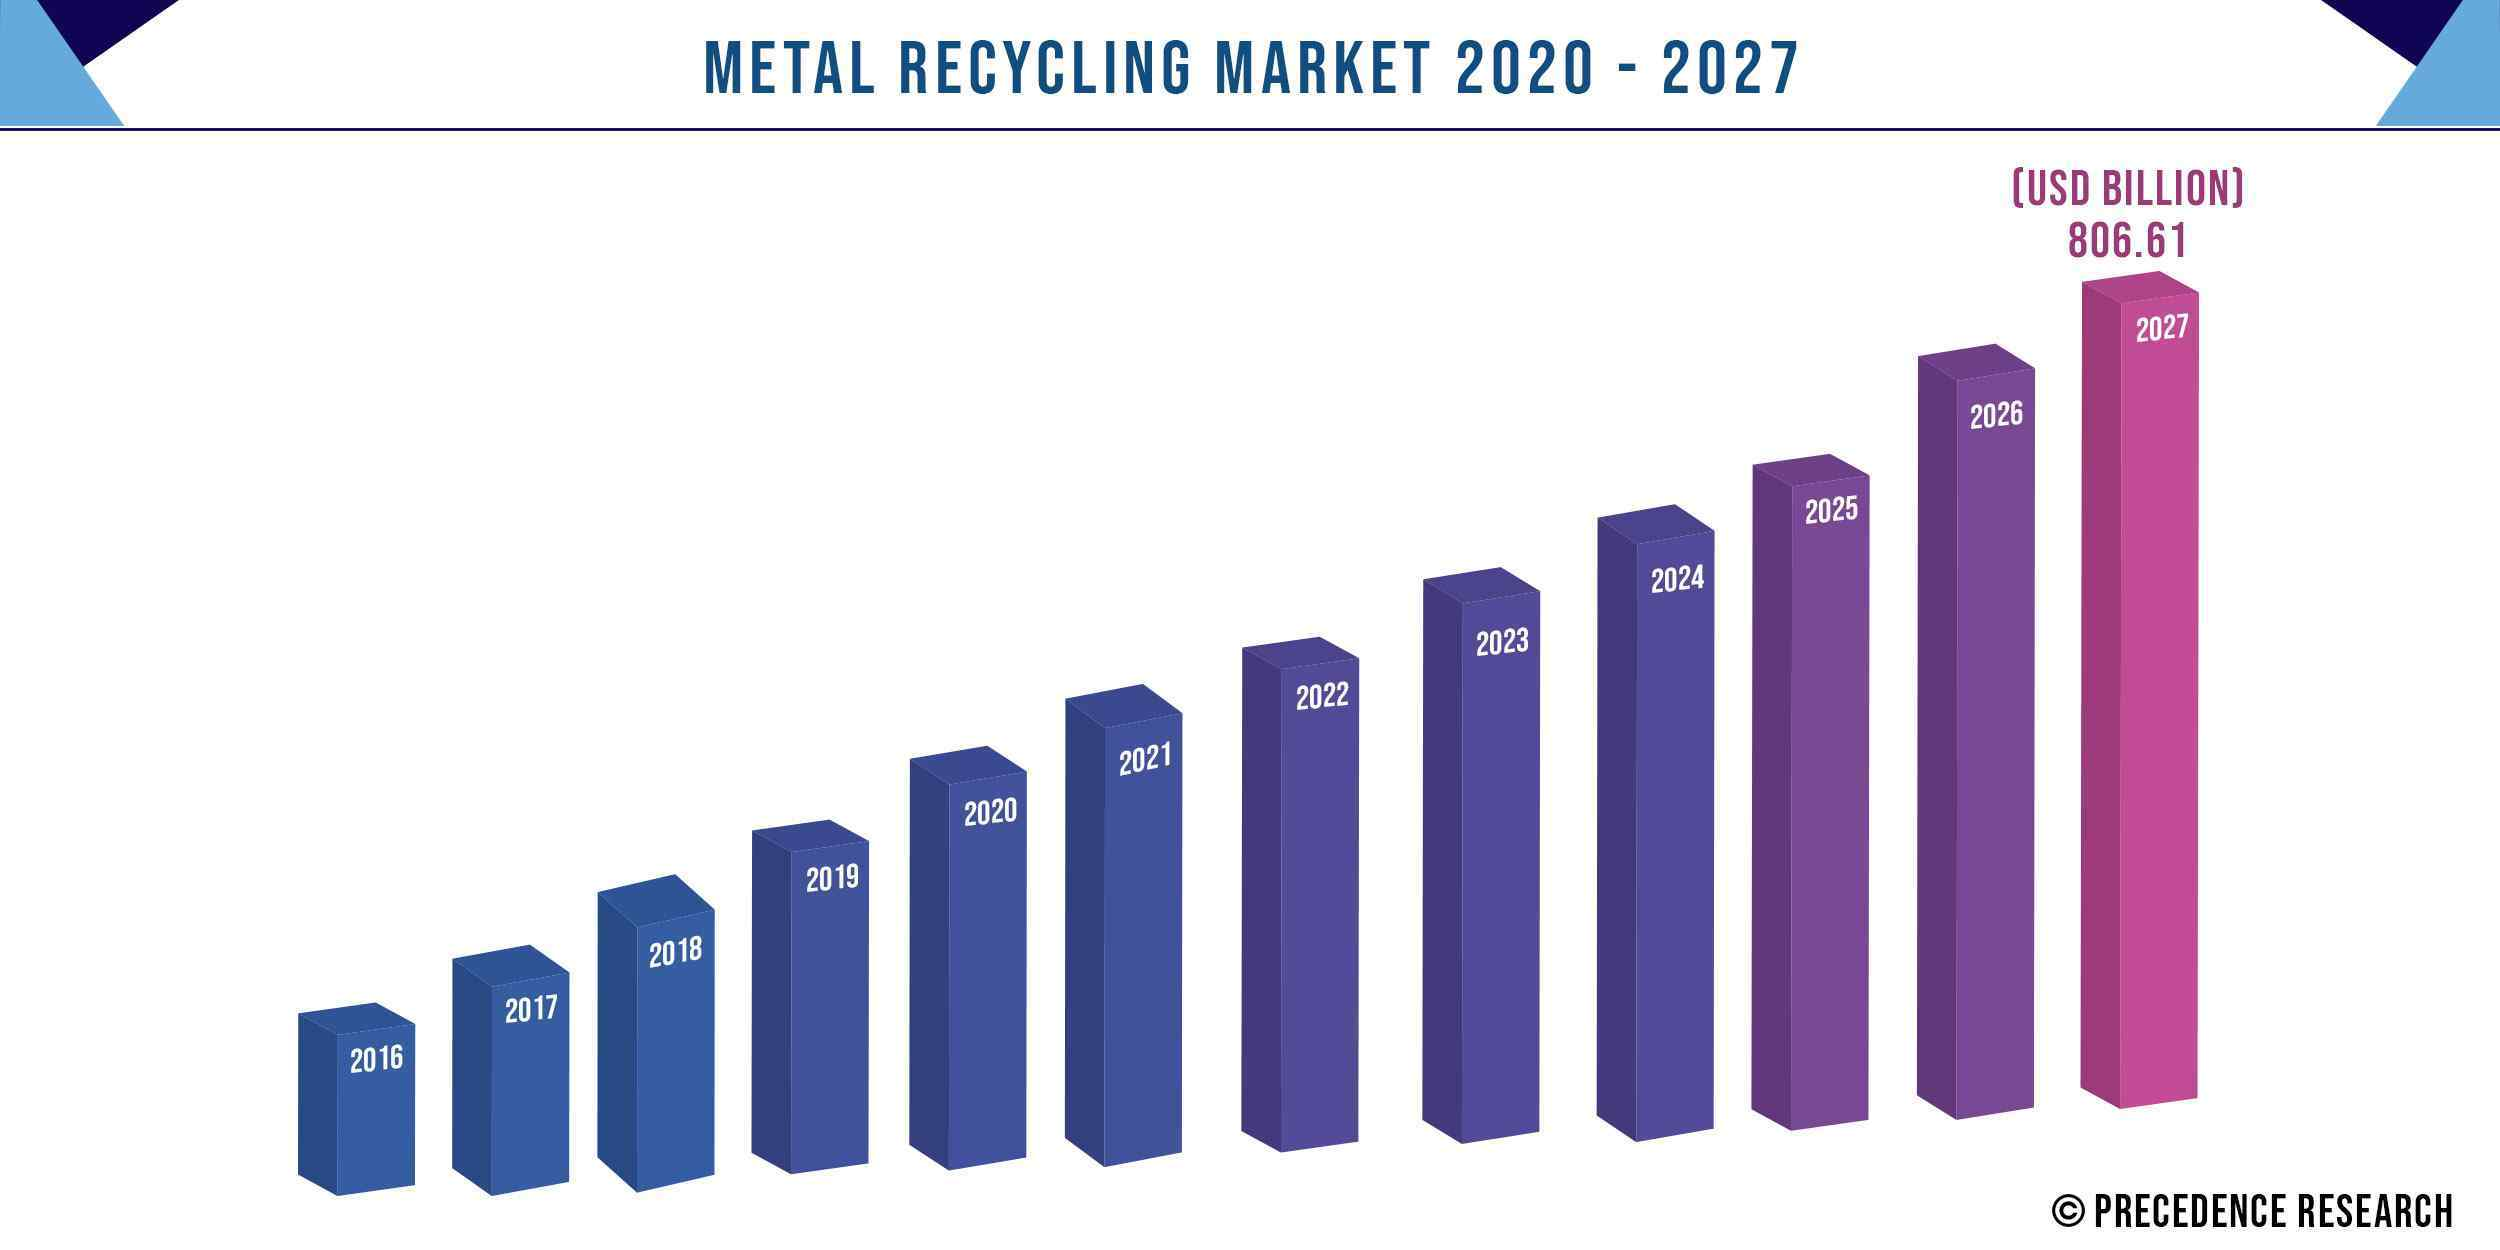 Metal Recycling Market Size 2016-2027